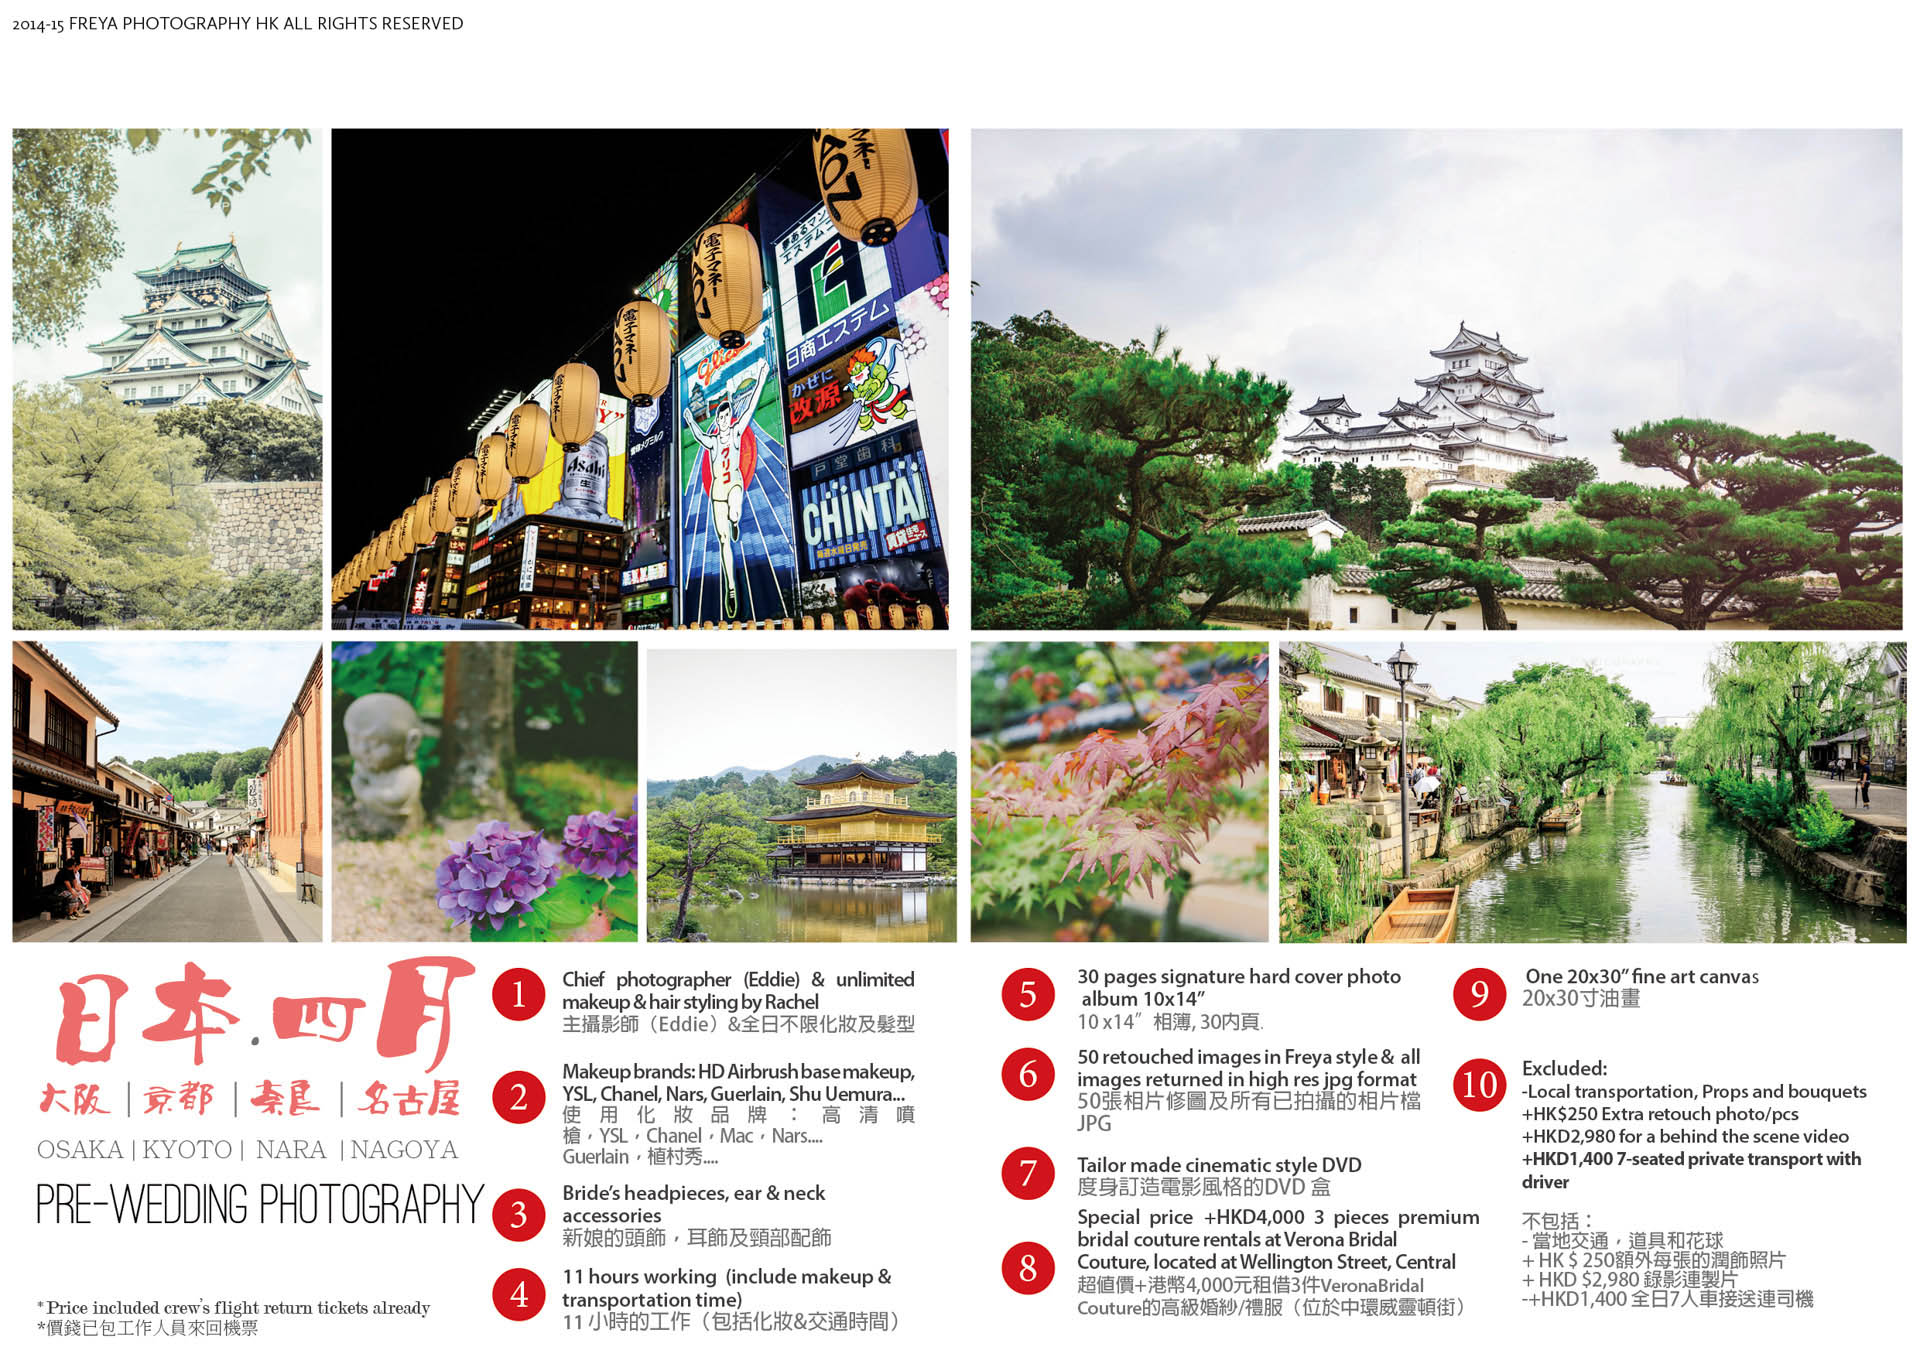 Japan pre-wedding tour 2015